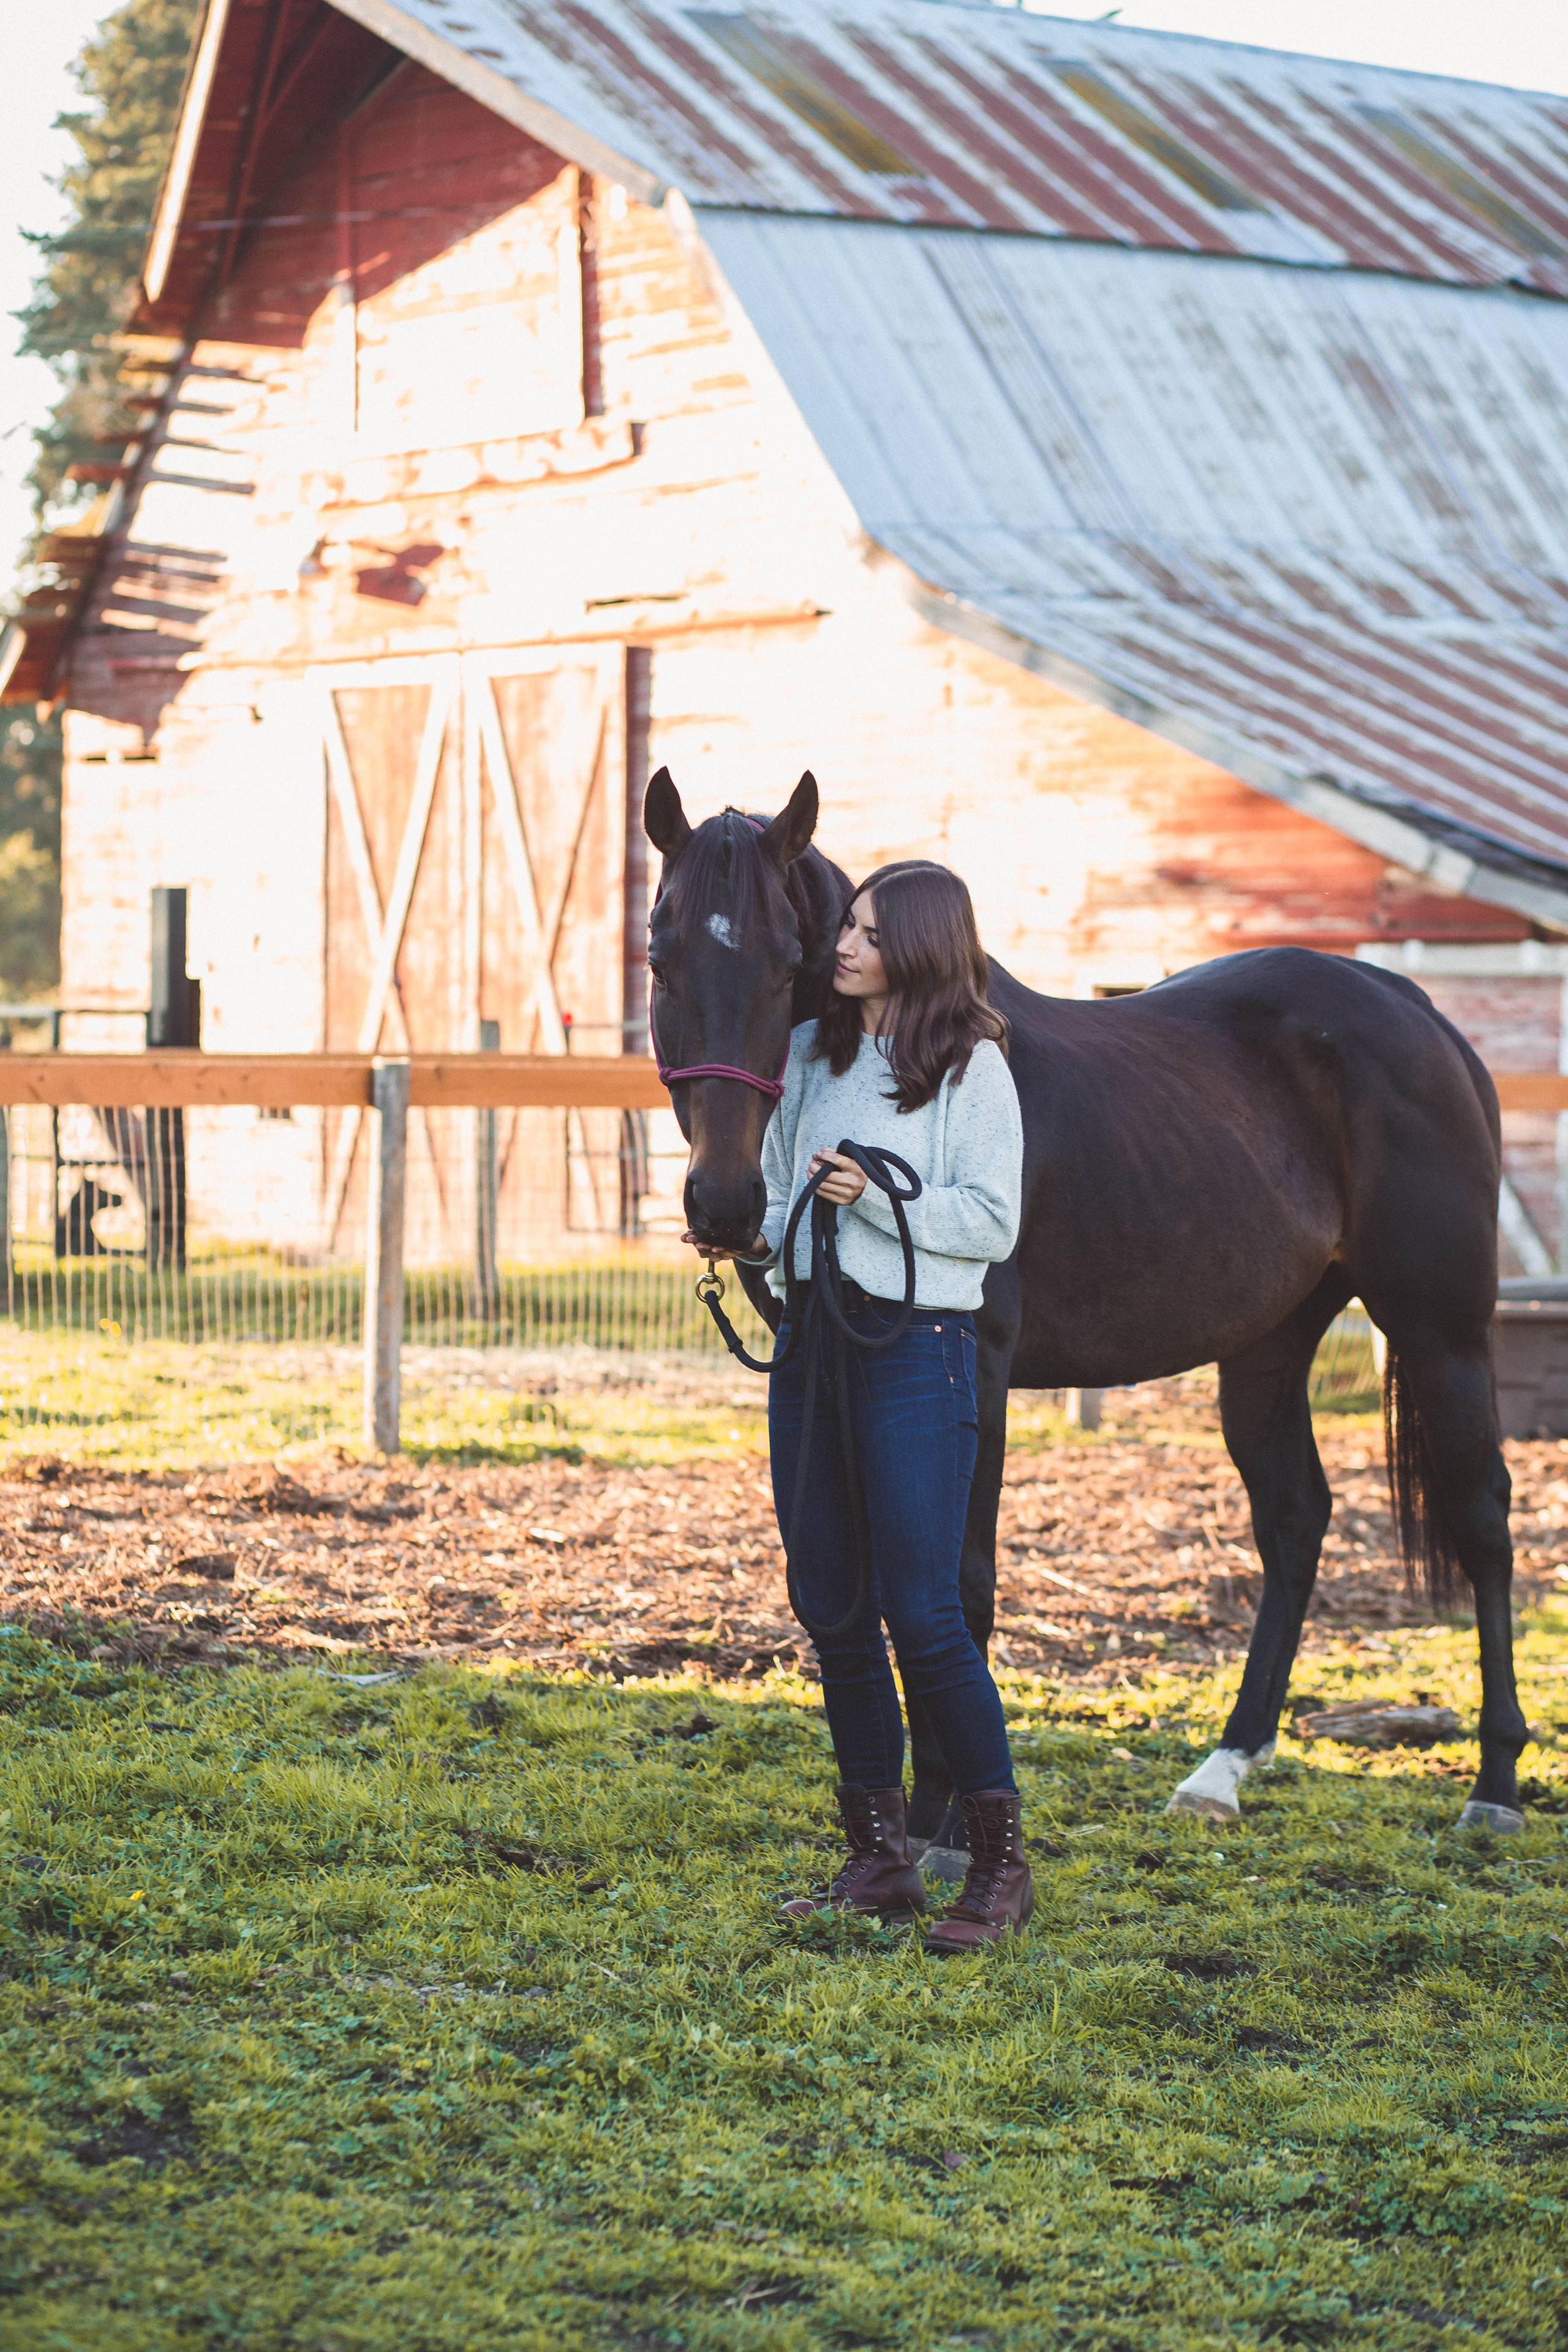 Equine Photography in Western Washington by A Bit O' Whimsy Photography